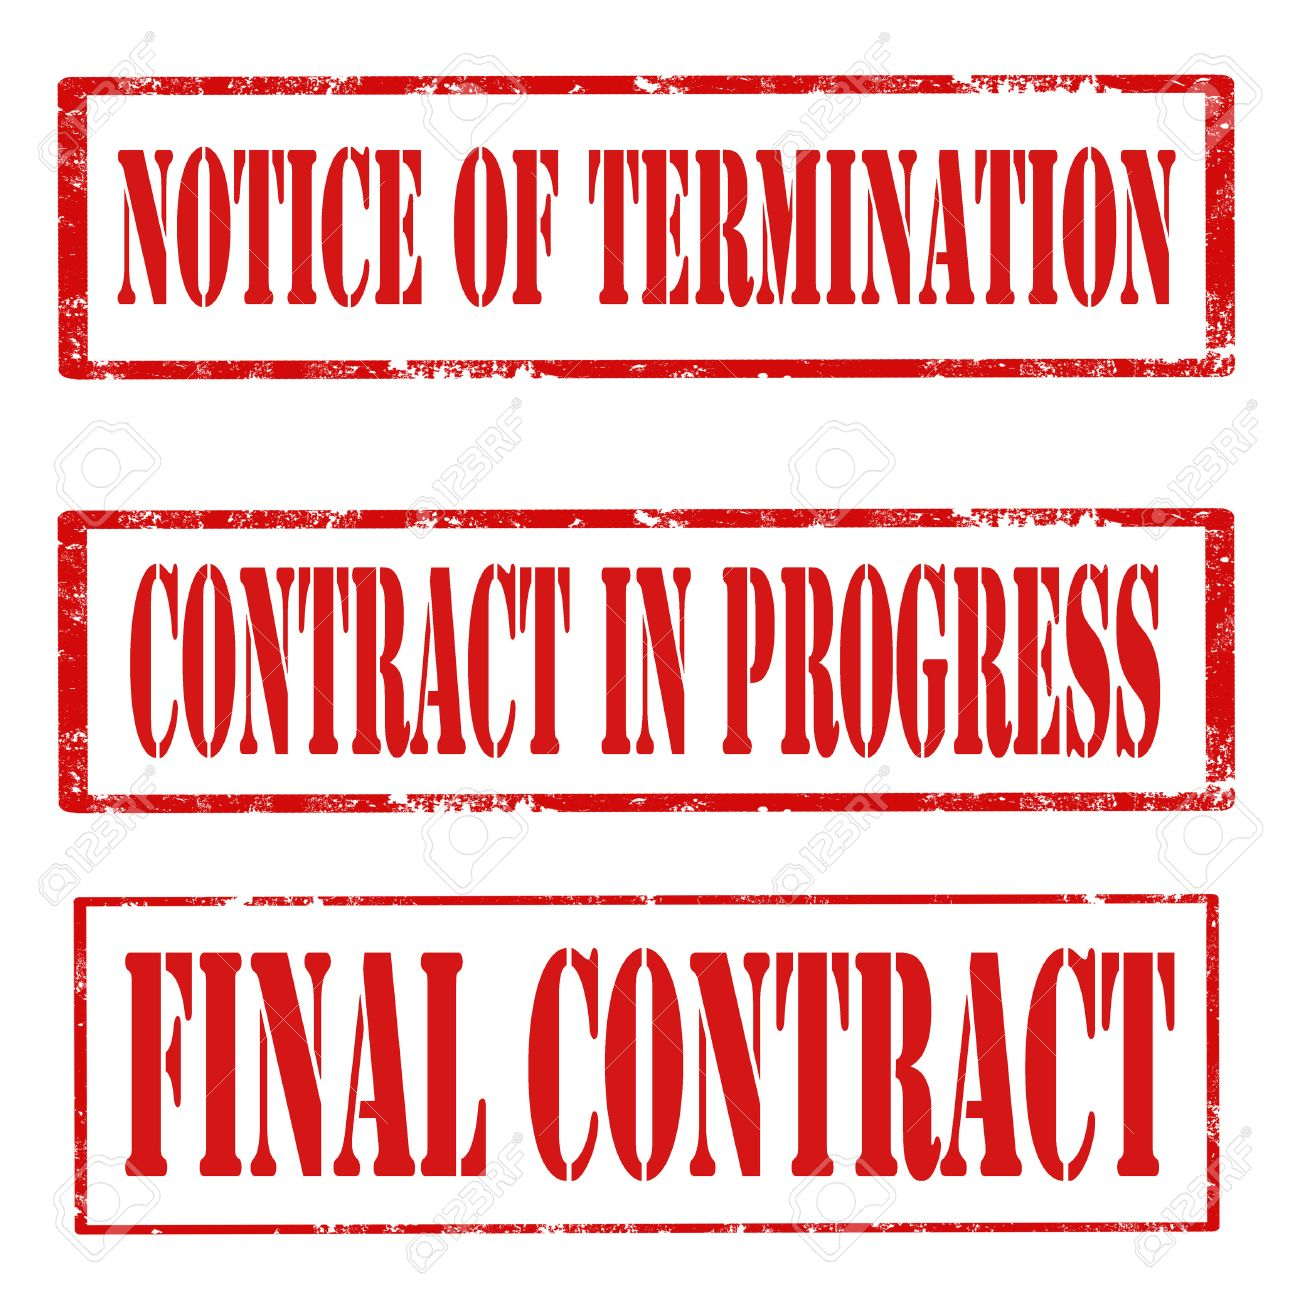 set of grunge rubber stamps text notice of termination set of grunge rubber stamps text notice of termination contract in progress and final